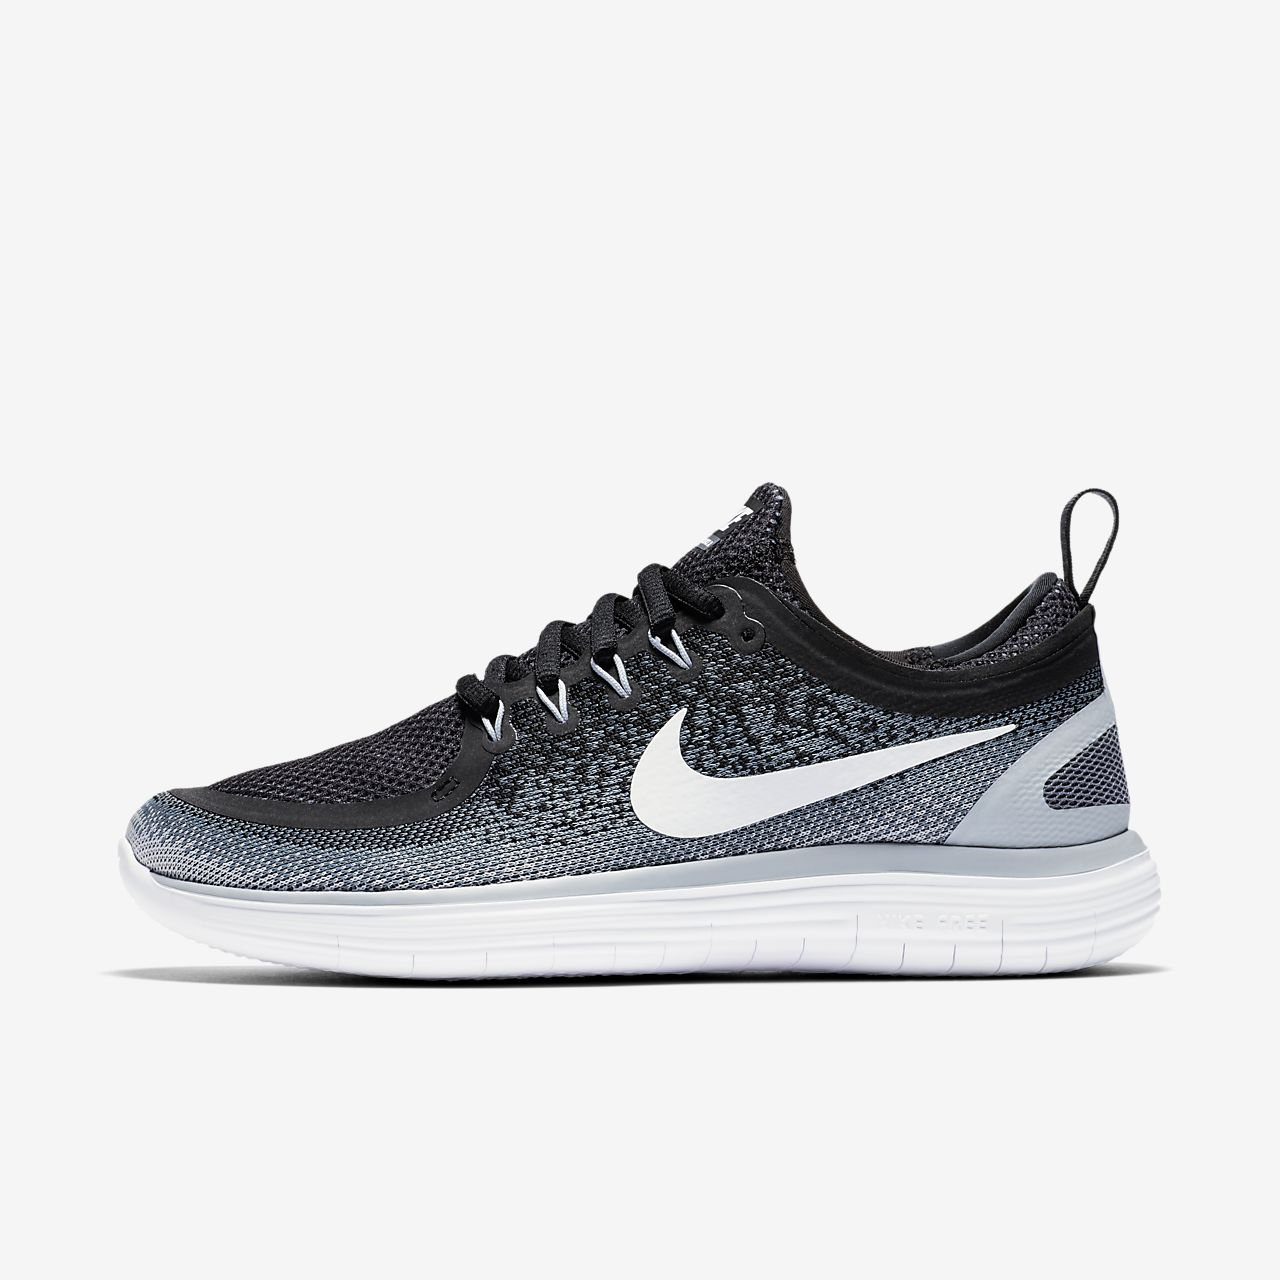 nike women's free run distance